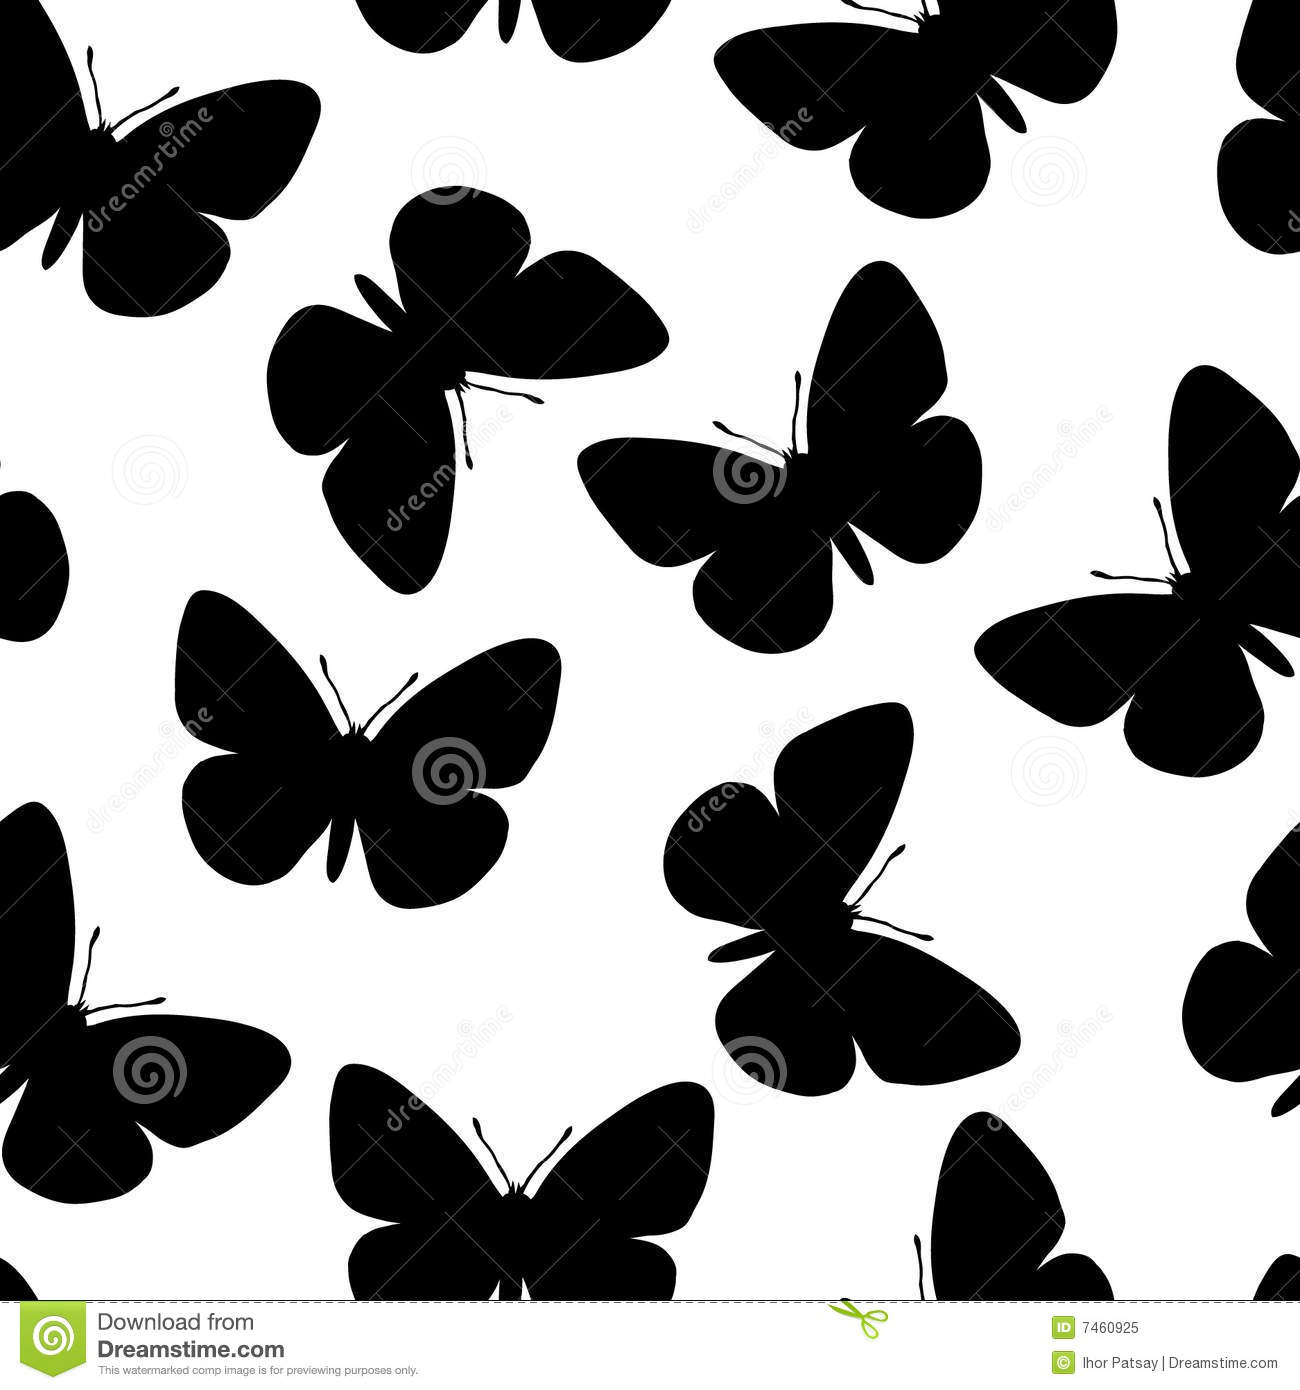 seamless butterfly pattern royalty free stock photo image 7460925